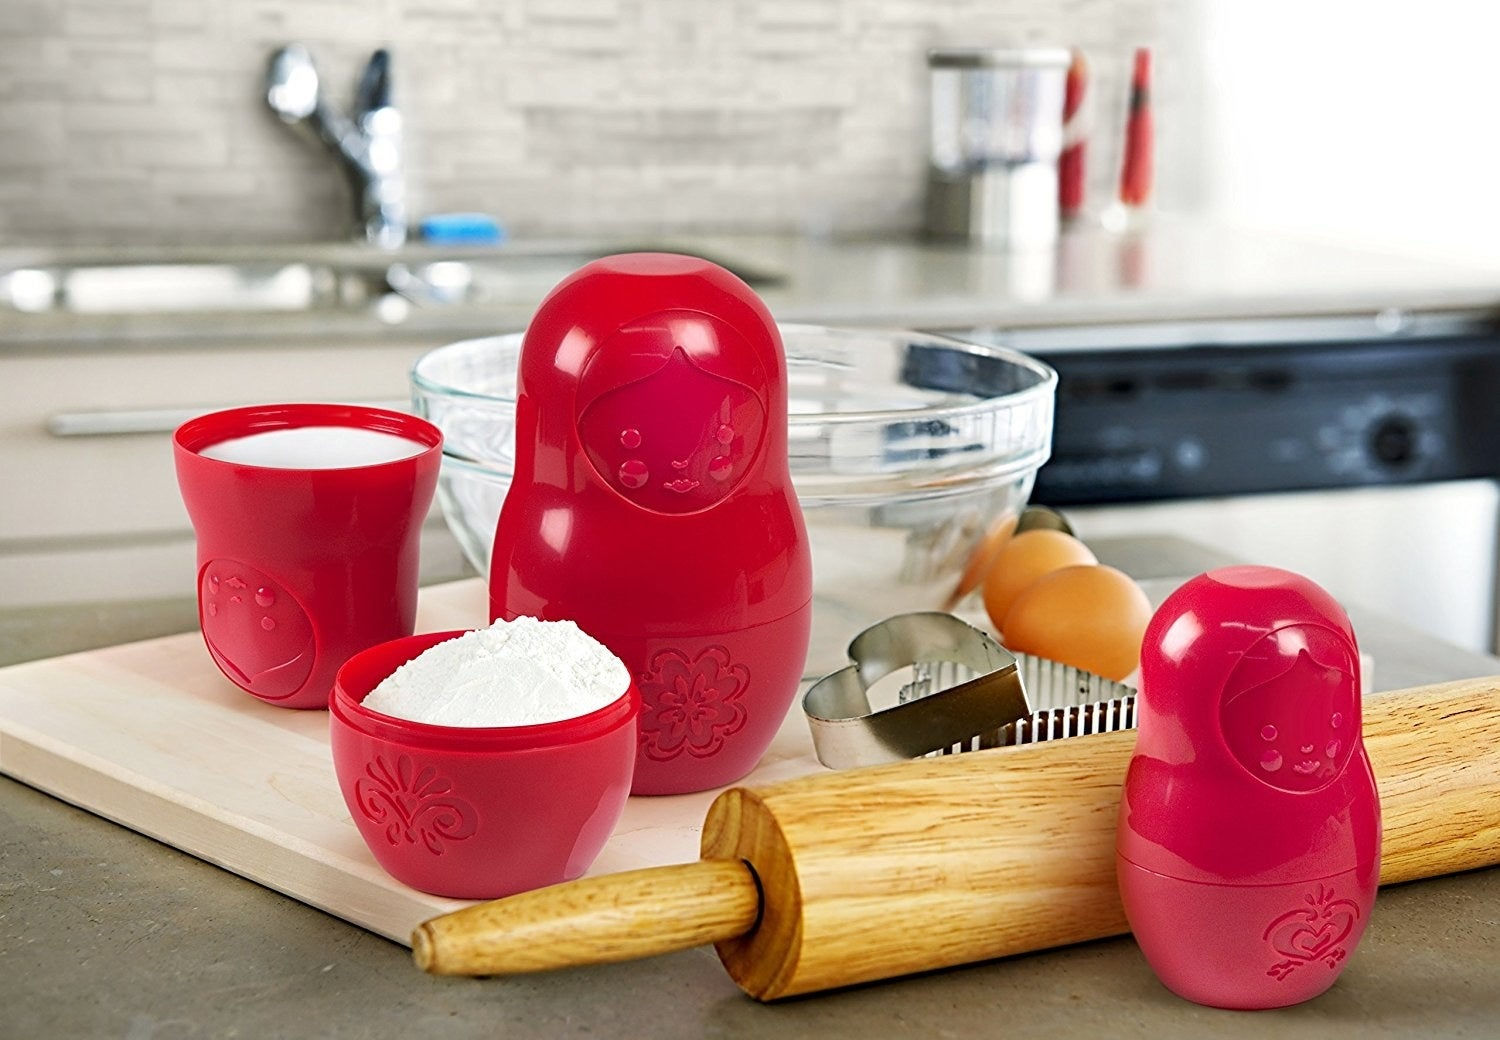 A matryoshka doll measuring cup set that'll nest neatly for storage.